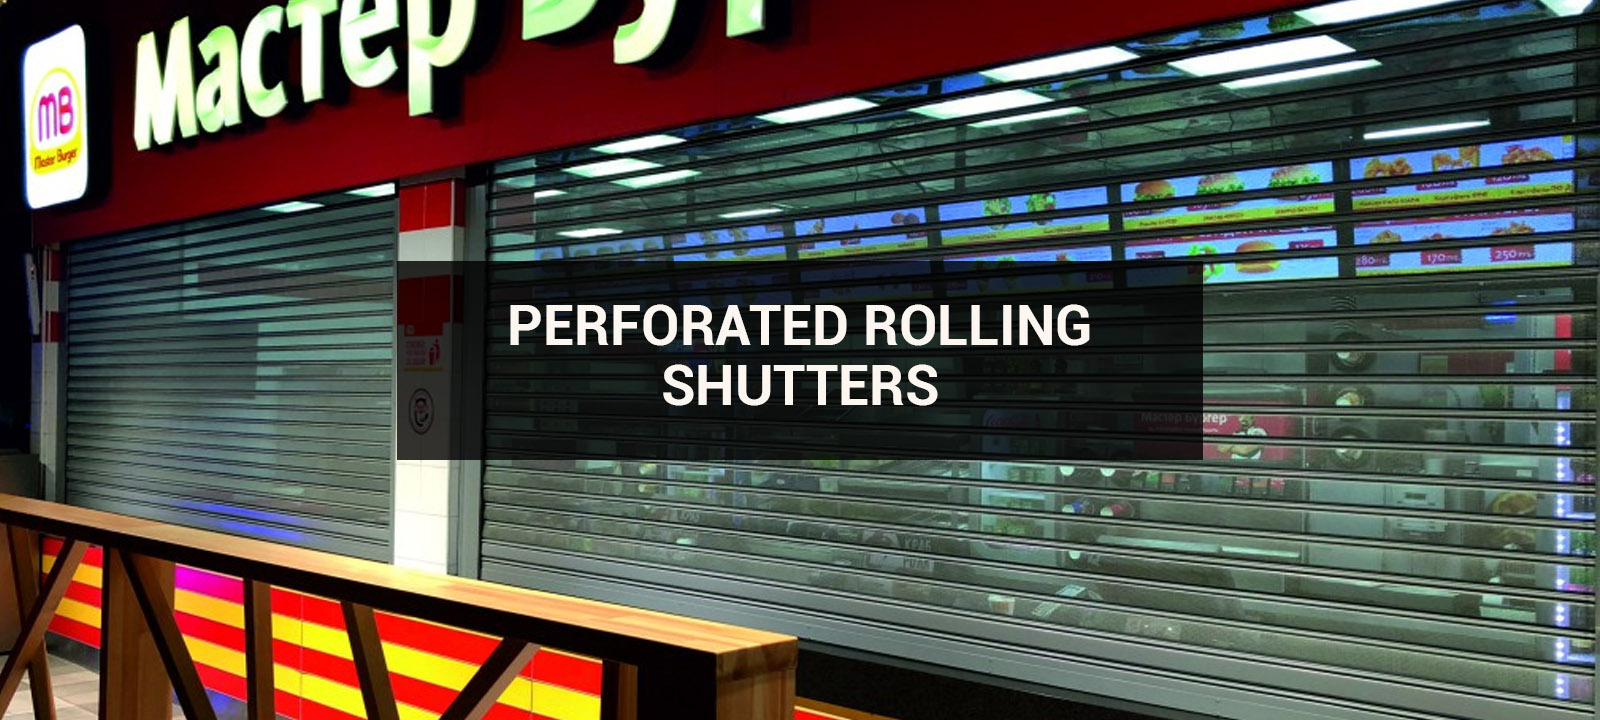 Perforated Rolling Shutters Intero Peregorodki